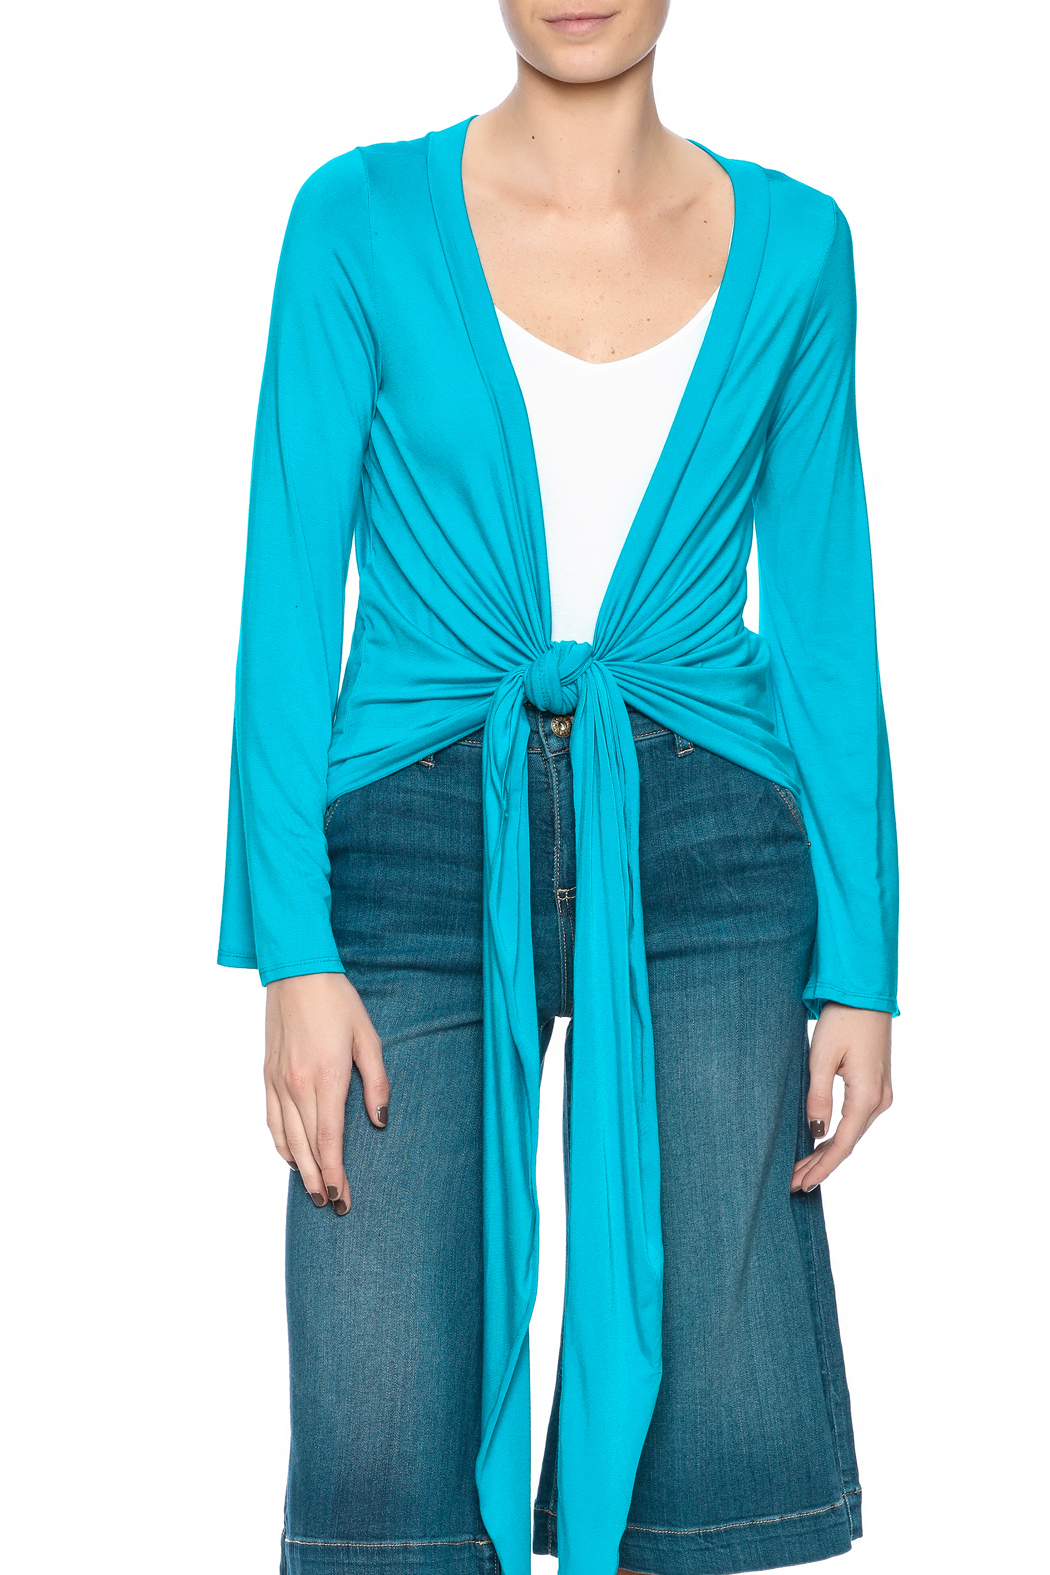 Clea Ray Perfect Wrap Top - Main Image